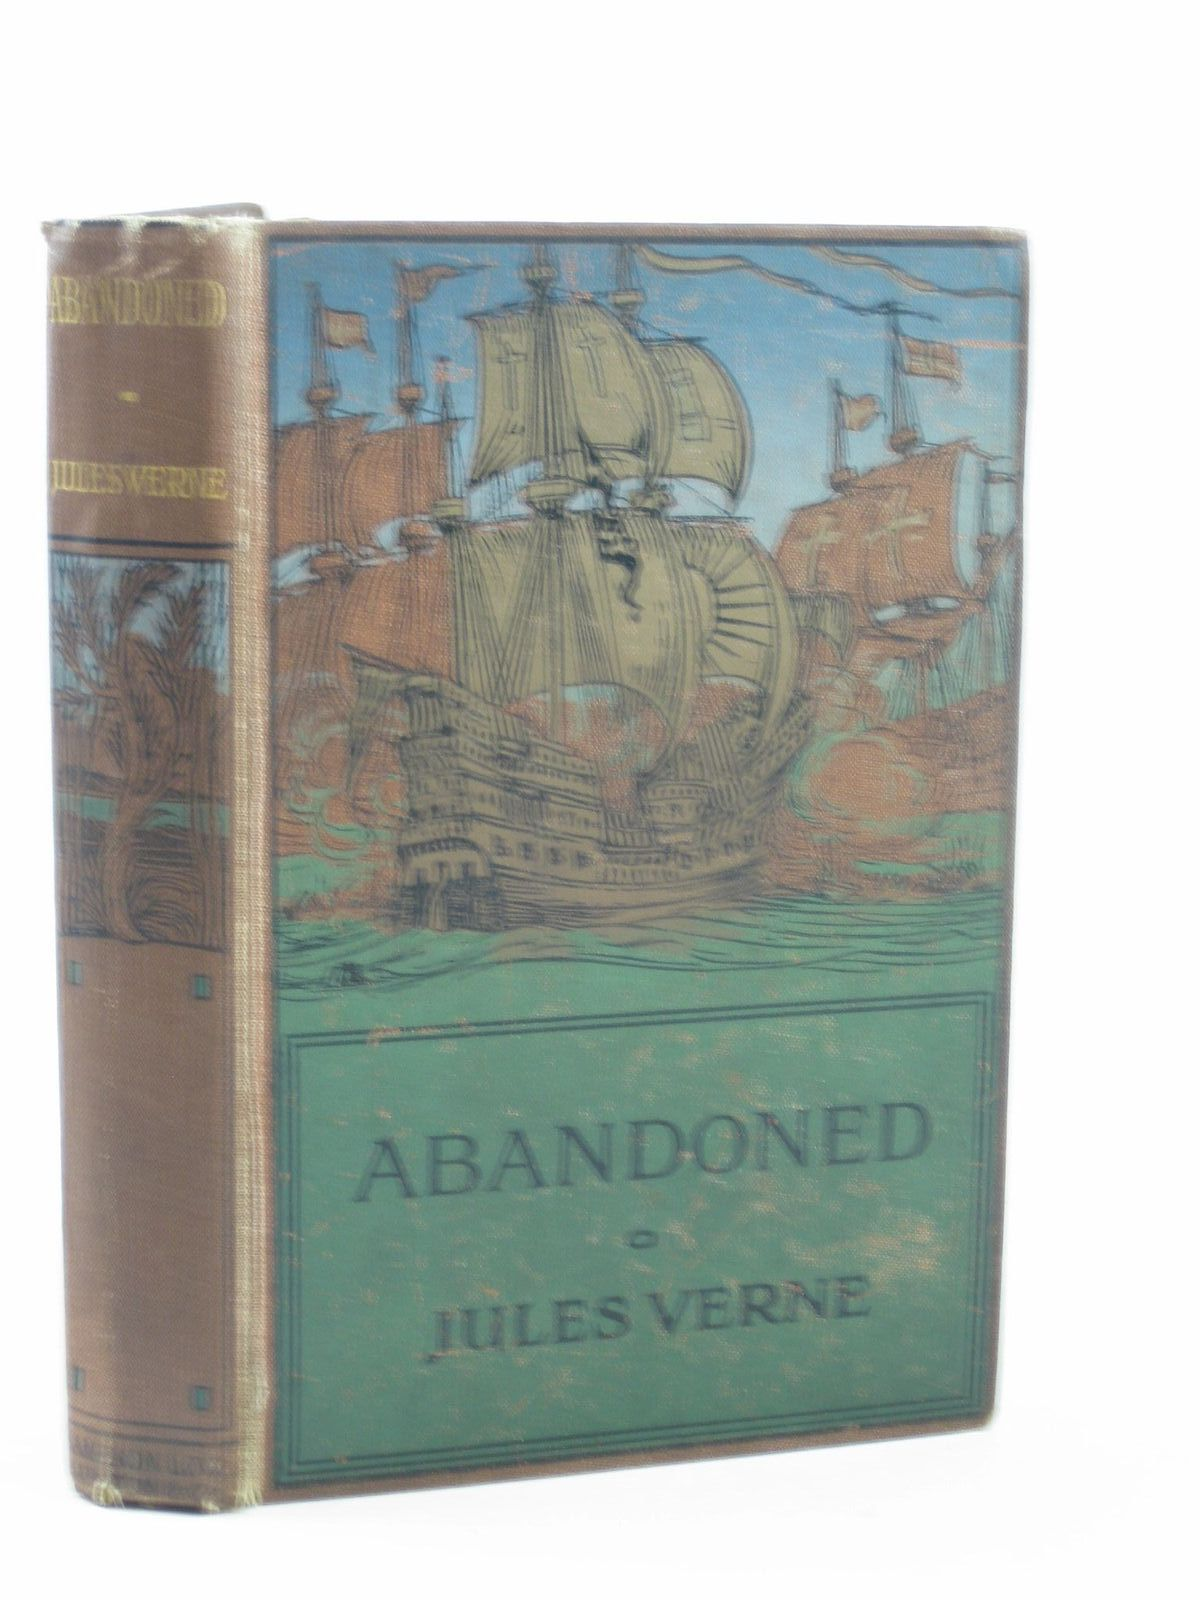 Photo of ABANDONED written by Verne, Jules published by Sampson Low, Marston & Co. Ltd. (STOCK CODE: 1501956)  for sale by Stella & Rose's Books